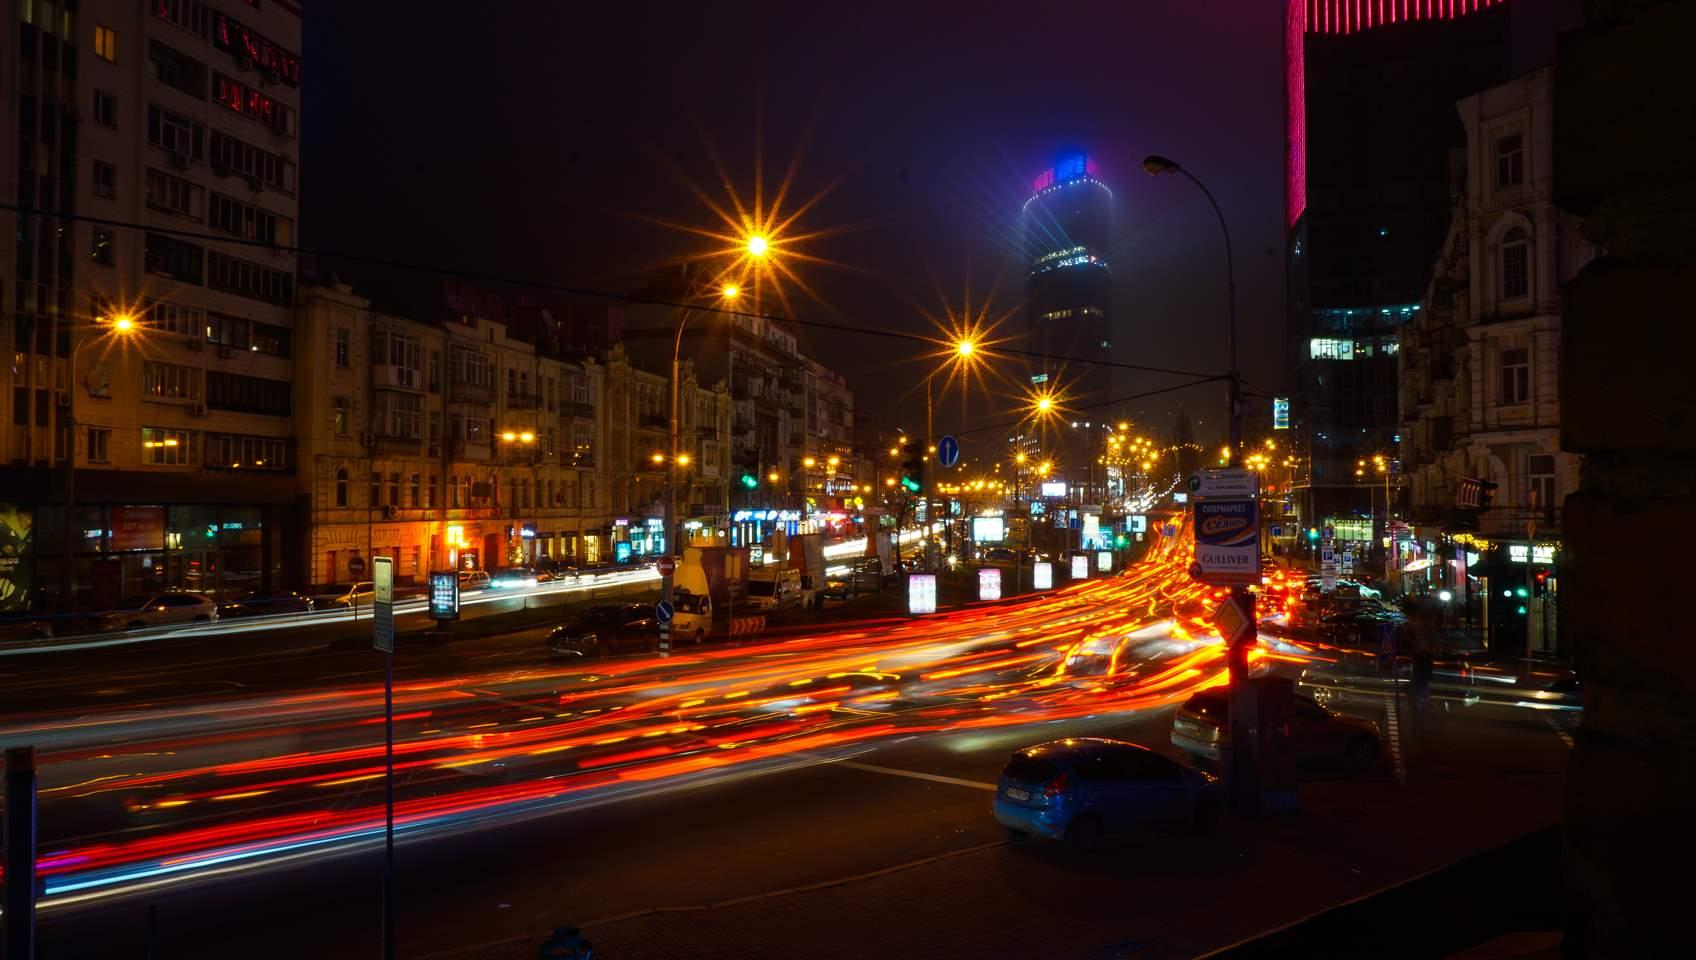 Night traffic in Kyiv